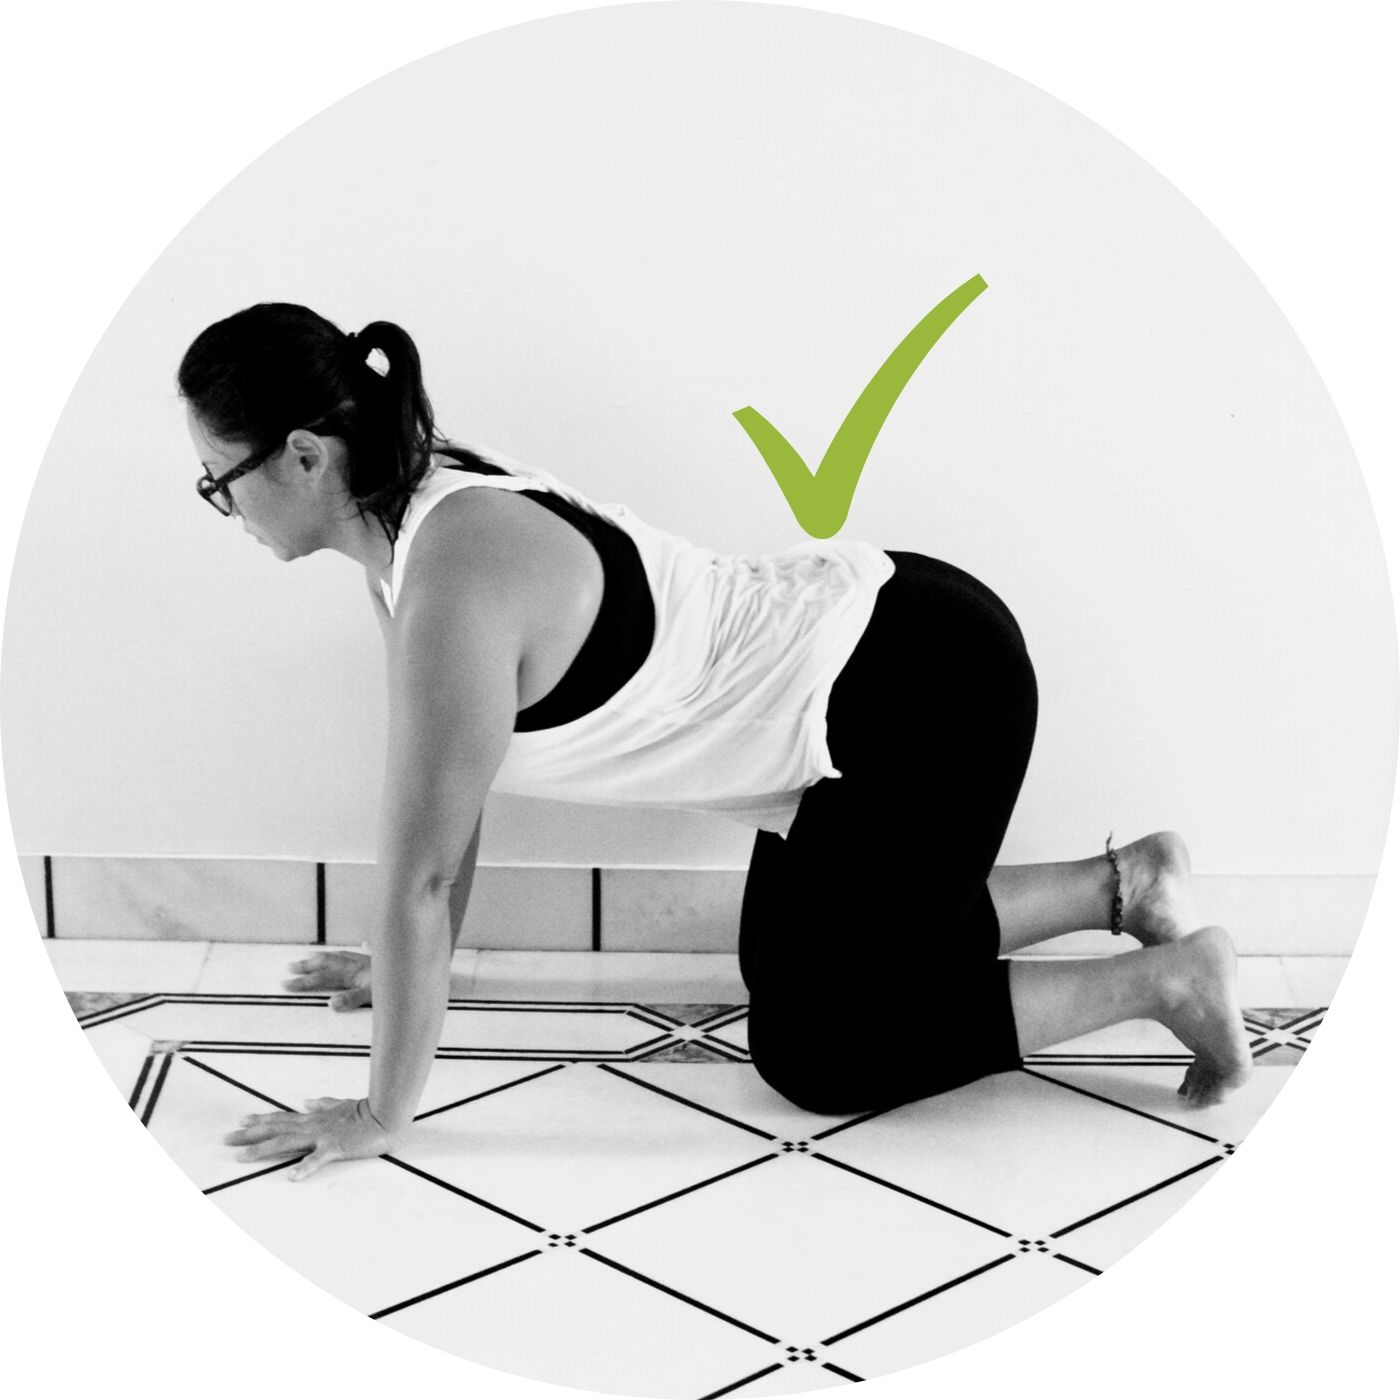 Creating Space in Low Back/ Waist in Tabletop | - Checkpoints:Keep arms fully extended pushing strongly into the floor (shoulders away from ears)Focus on trying to pull/scoop tailbone up to the ceiling